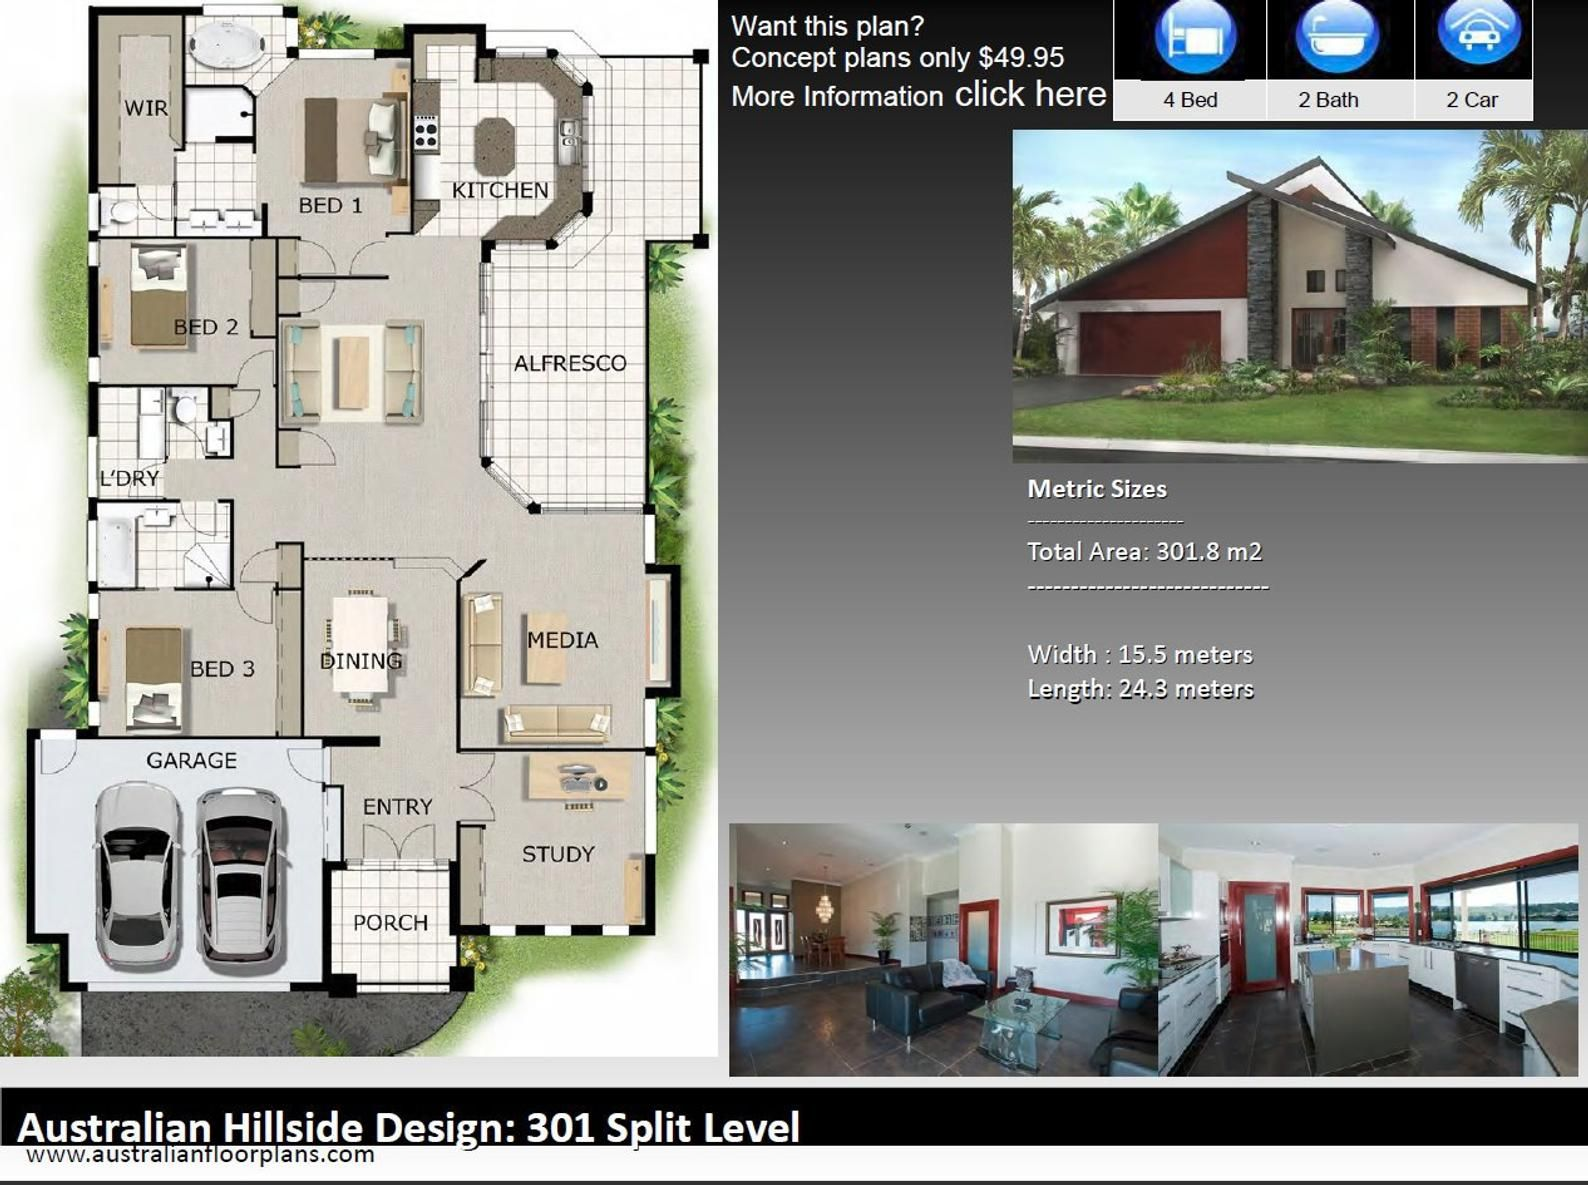 4 Bedroom House Designs Australian And International Home Etsy 4 Bedroom House Designs 4 Bedroom House Plans Bedroom House Plans